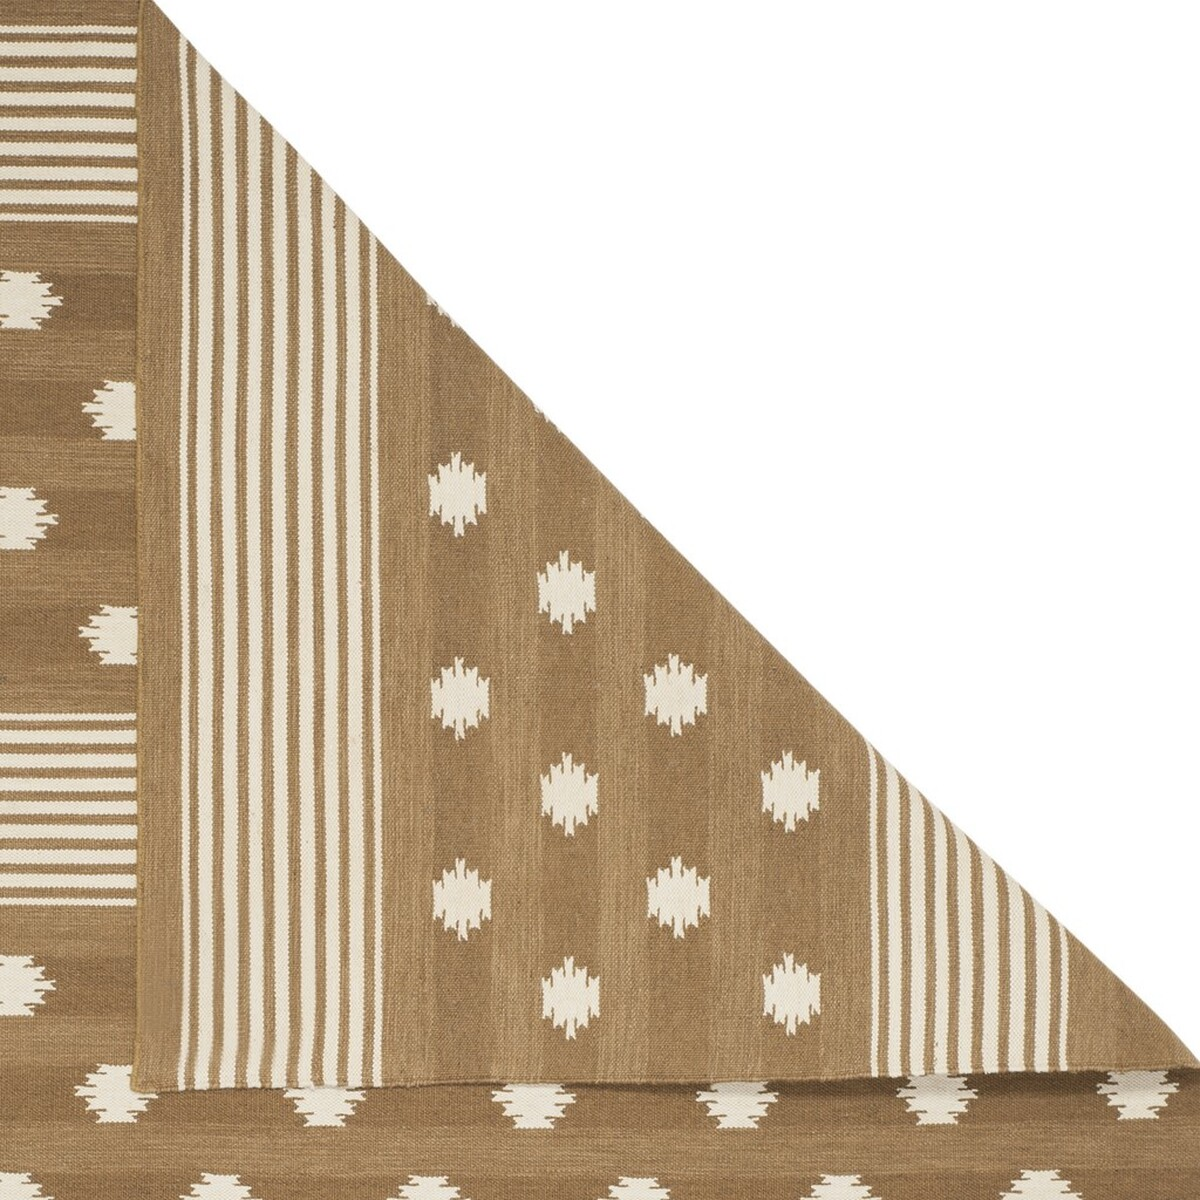 10 Small House Designs That Break Preconceptions About Small Size: Ralph Lauren Area Rugs By Safavieh